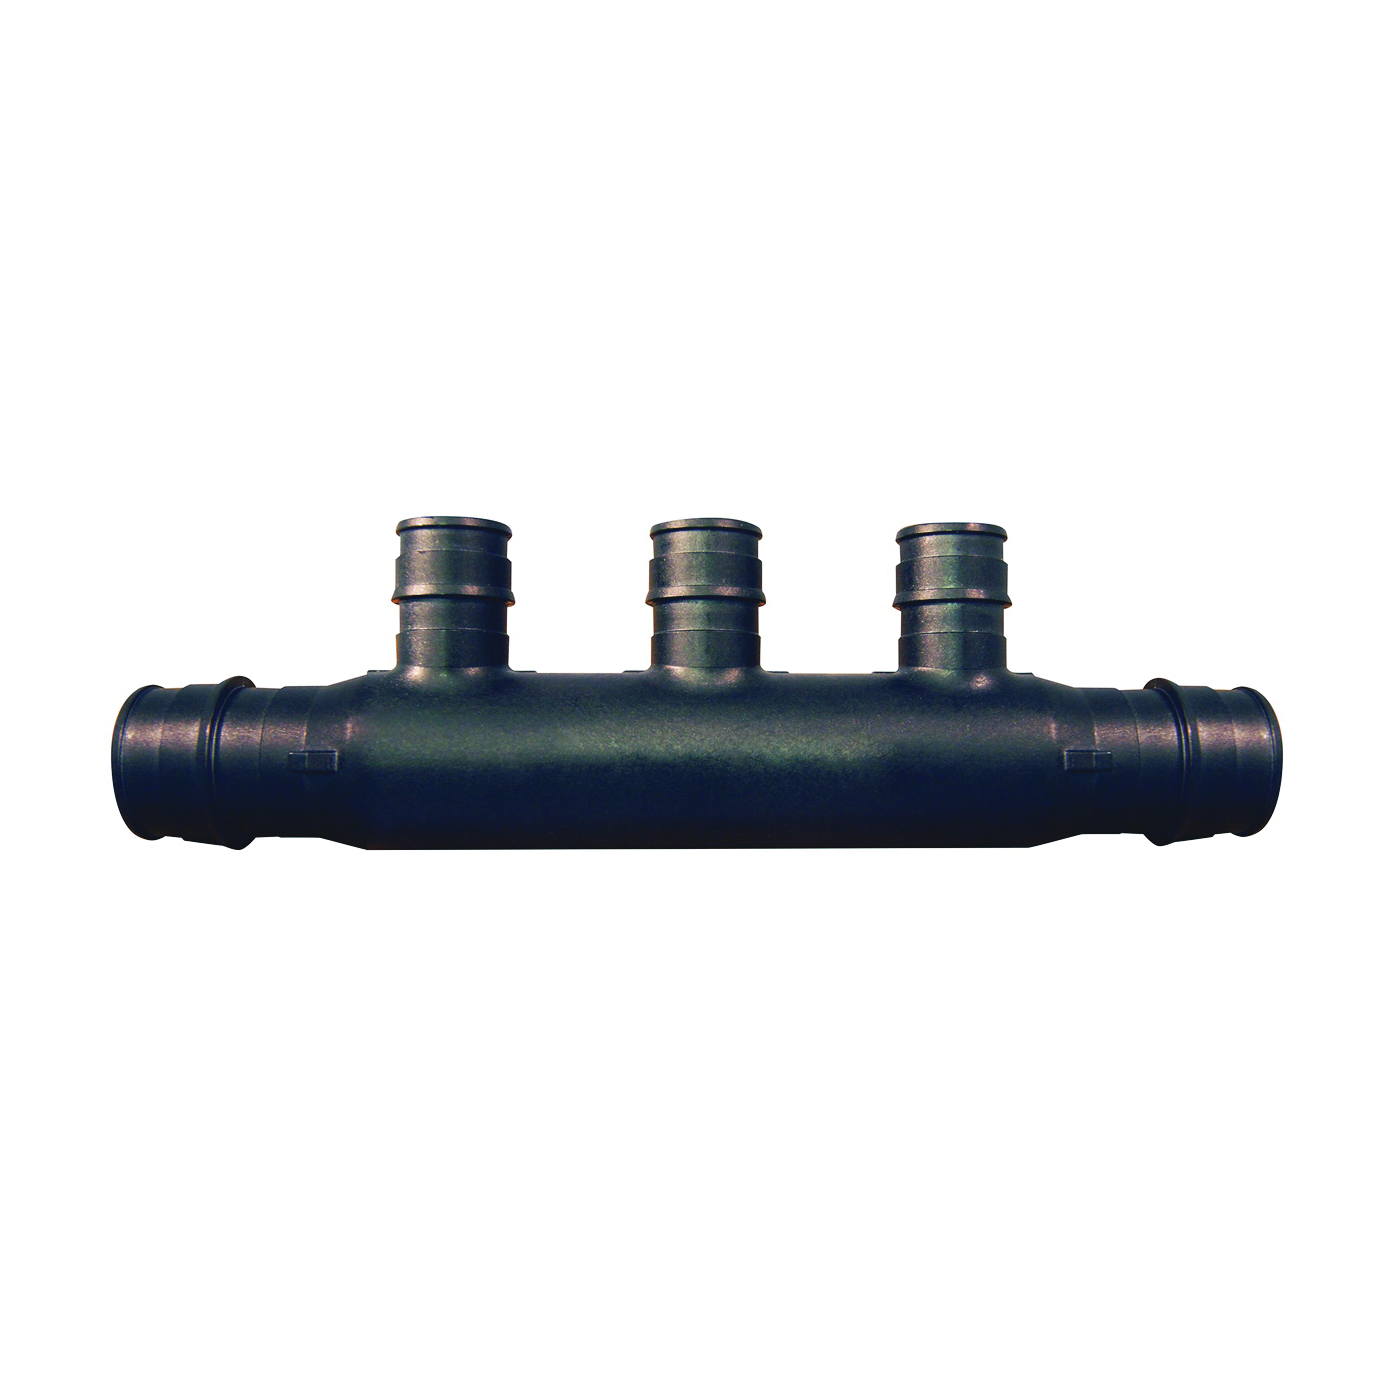 Picture of Apollo ExpansionPEX EPXM3PTO Open End Manifold, 2-Inlet, 3/4 in Inlet, 3-Outlet, 1/2 in Outlet, Brass